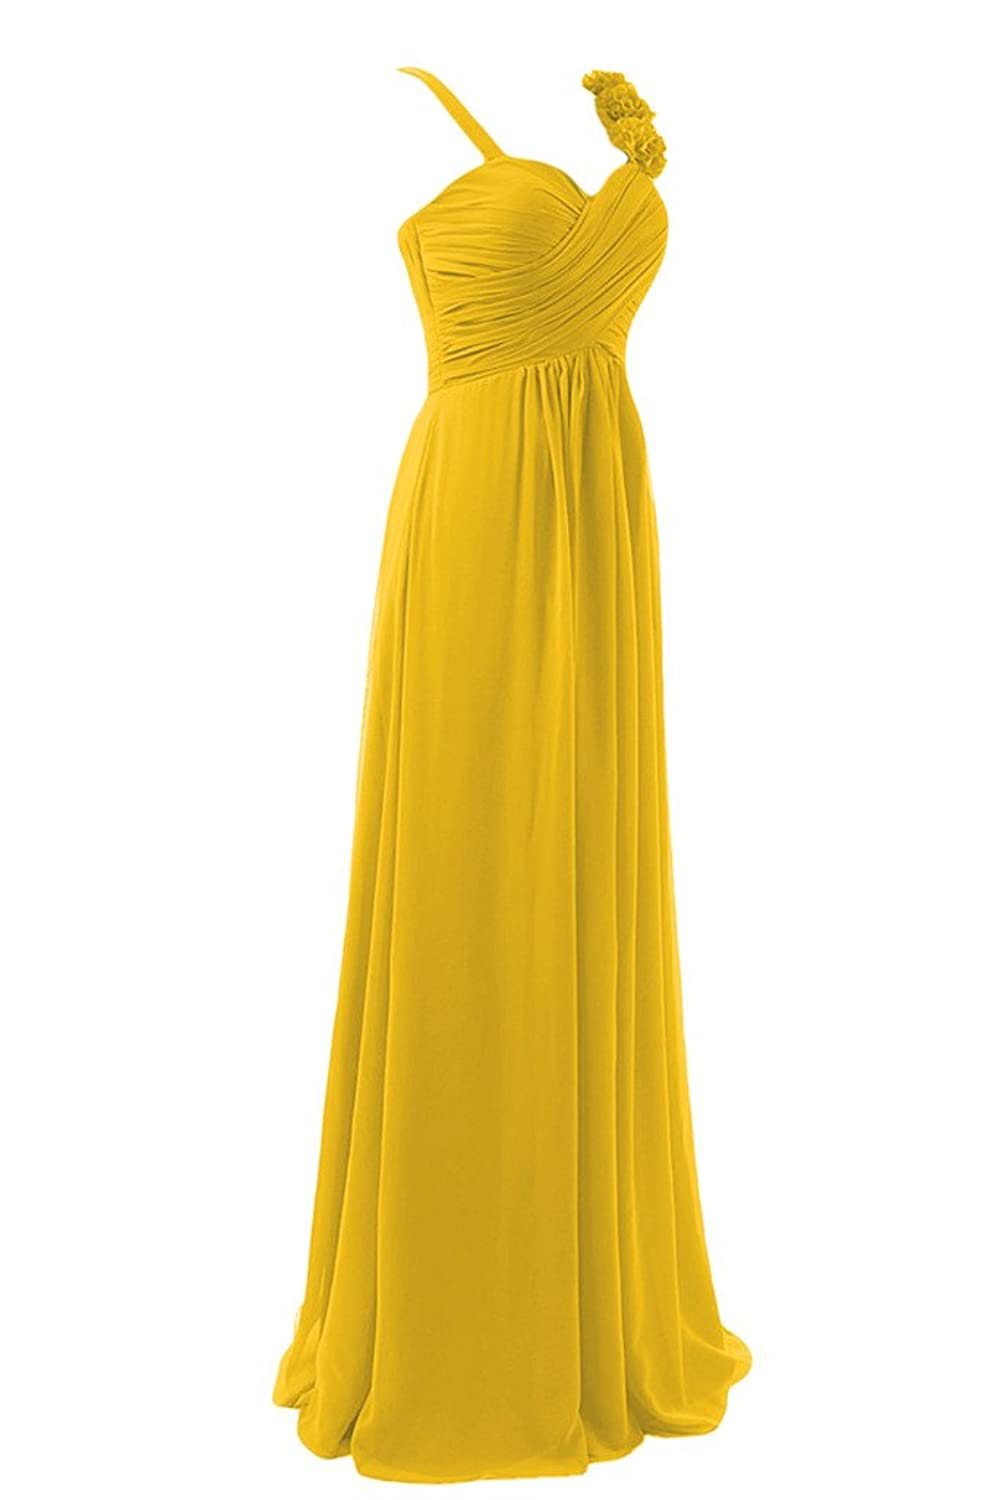 Sunvary Chiffon Spaghetti Straps Sweetheart Bridesmaid Dresses Evening Dresses Prom Gowns